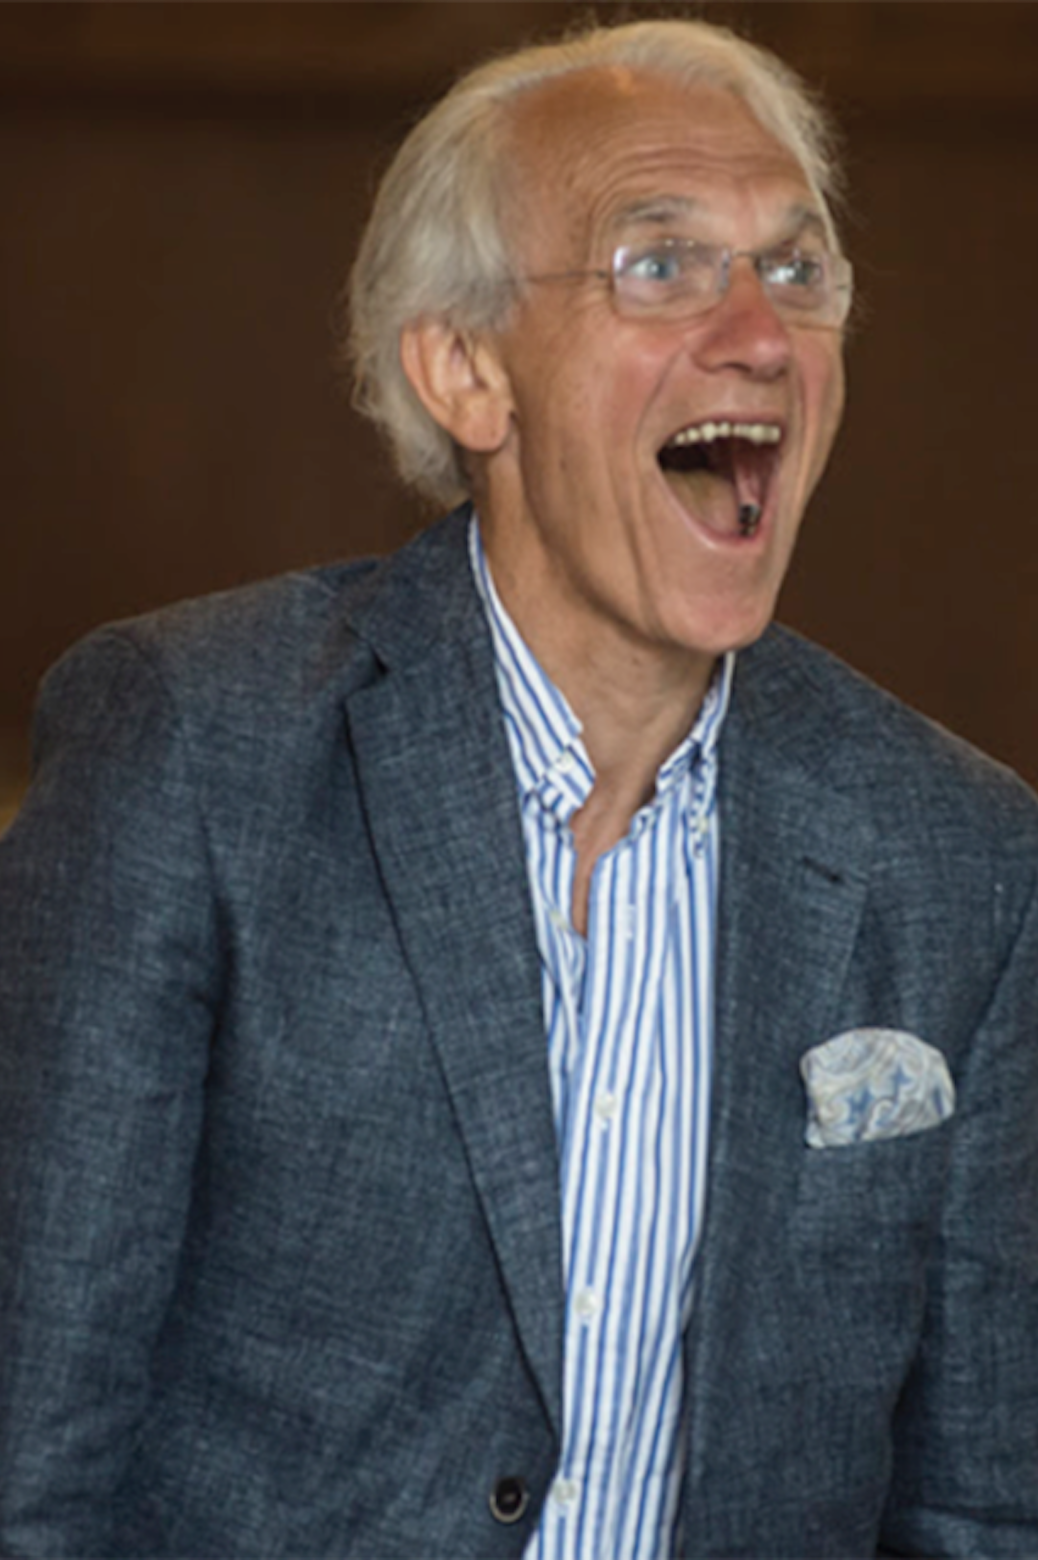 Gérard Mourou standing up with his mouth open